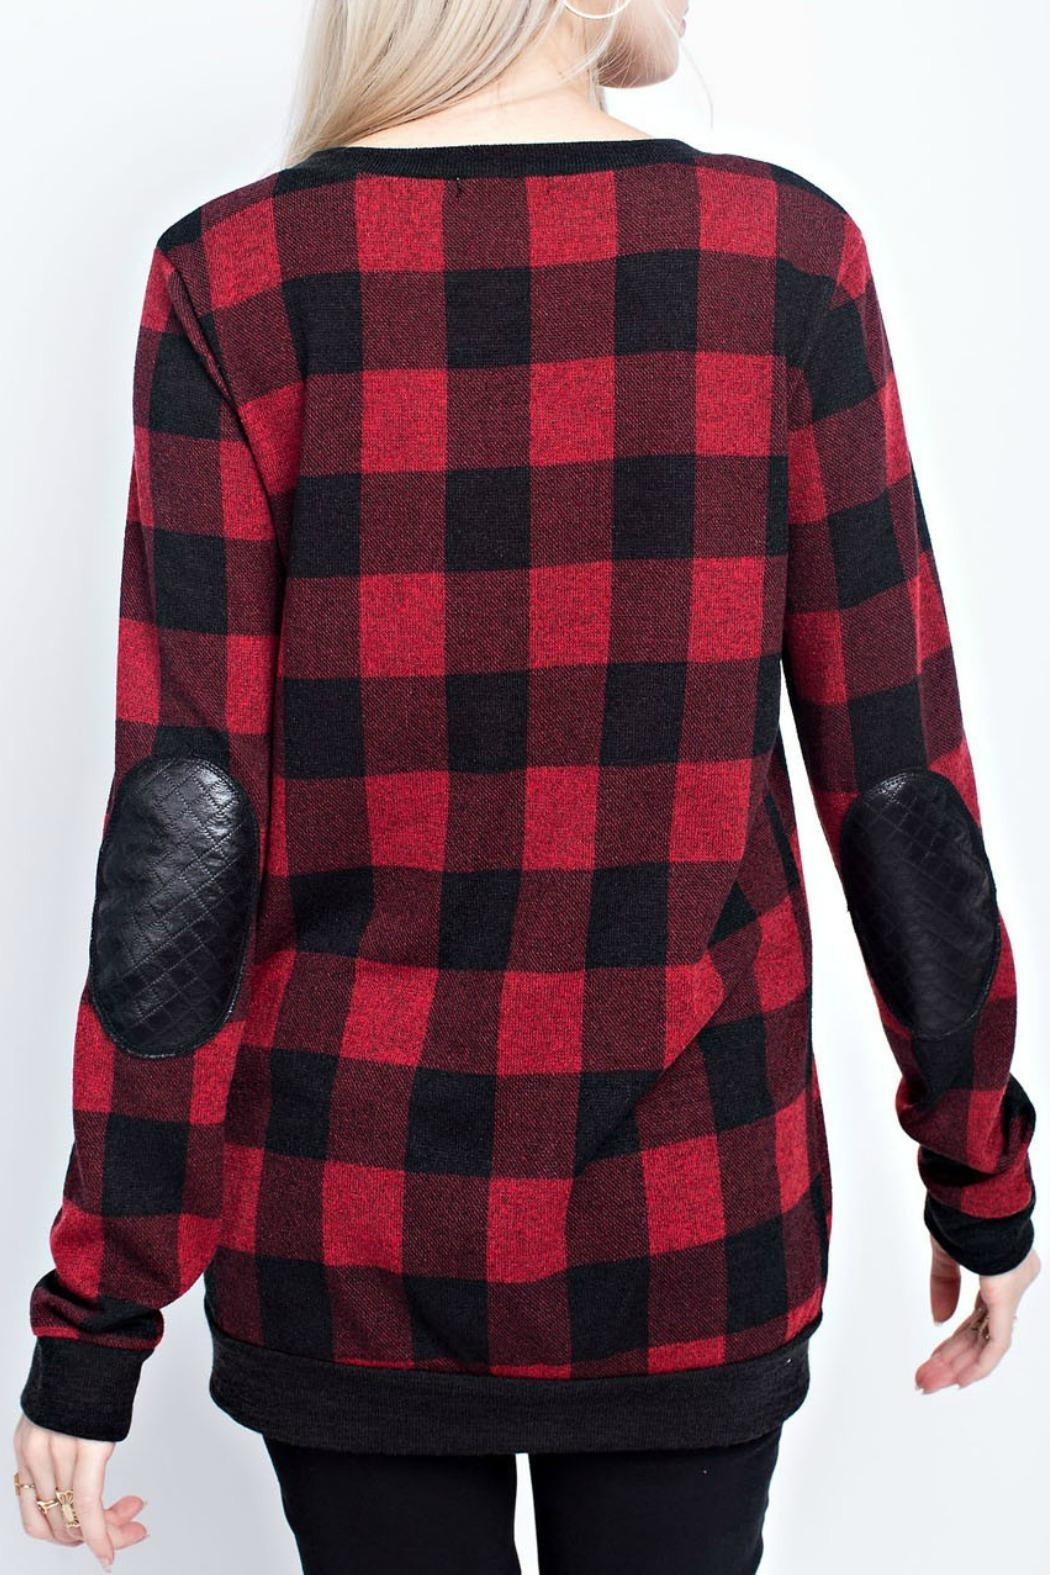 12pm by Mon Ami Chelsey Checked Sweater - Front Full Image